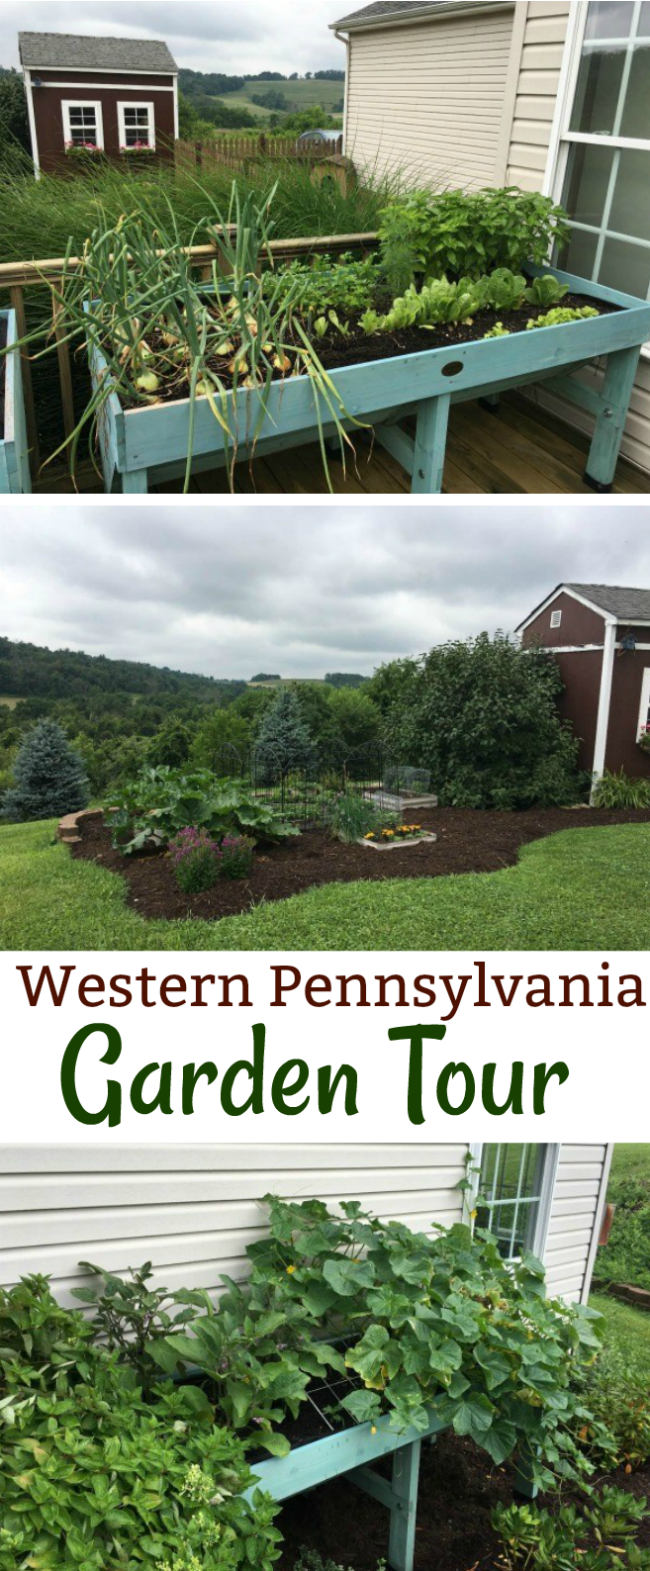 Mavis Mail – Tina From Western Pennsylvania Sends in Her Garden Photos